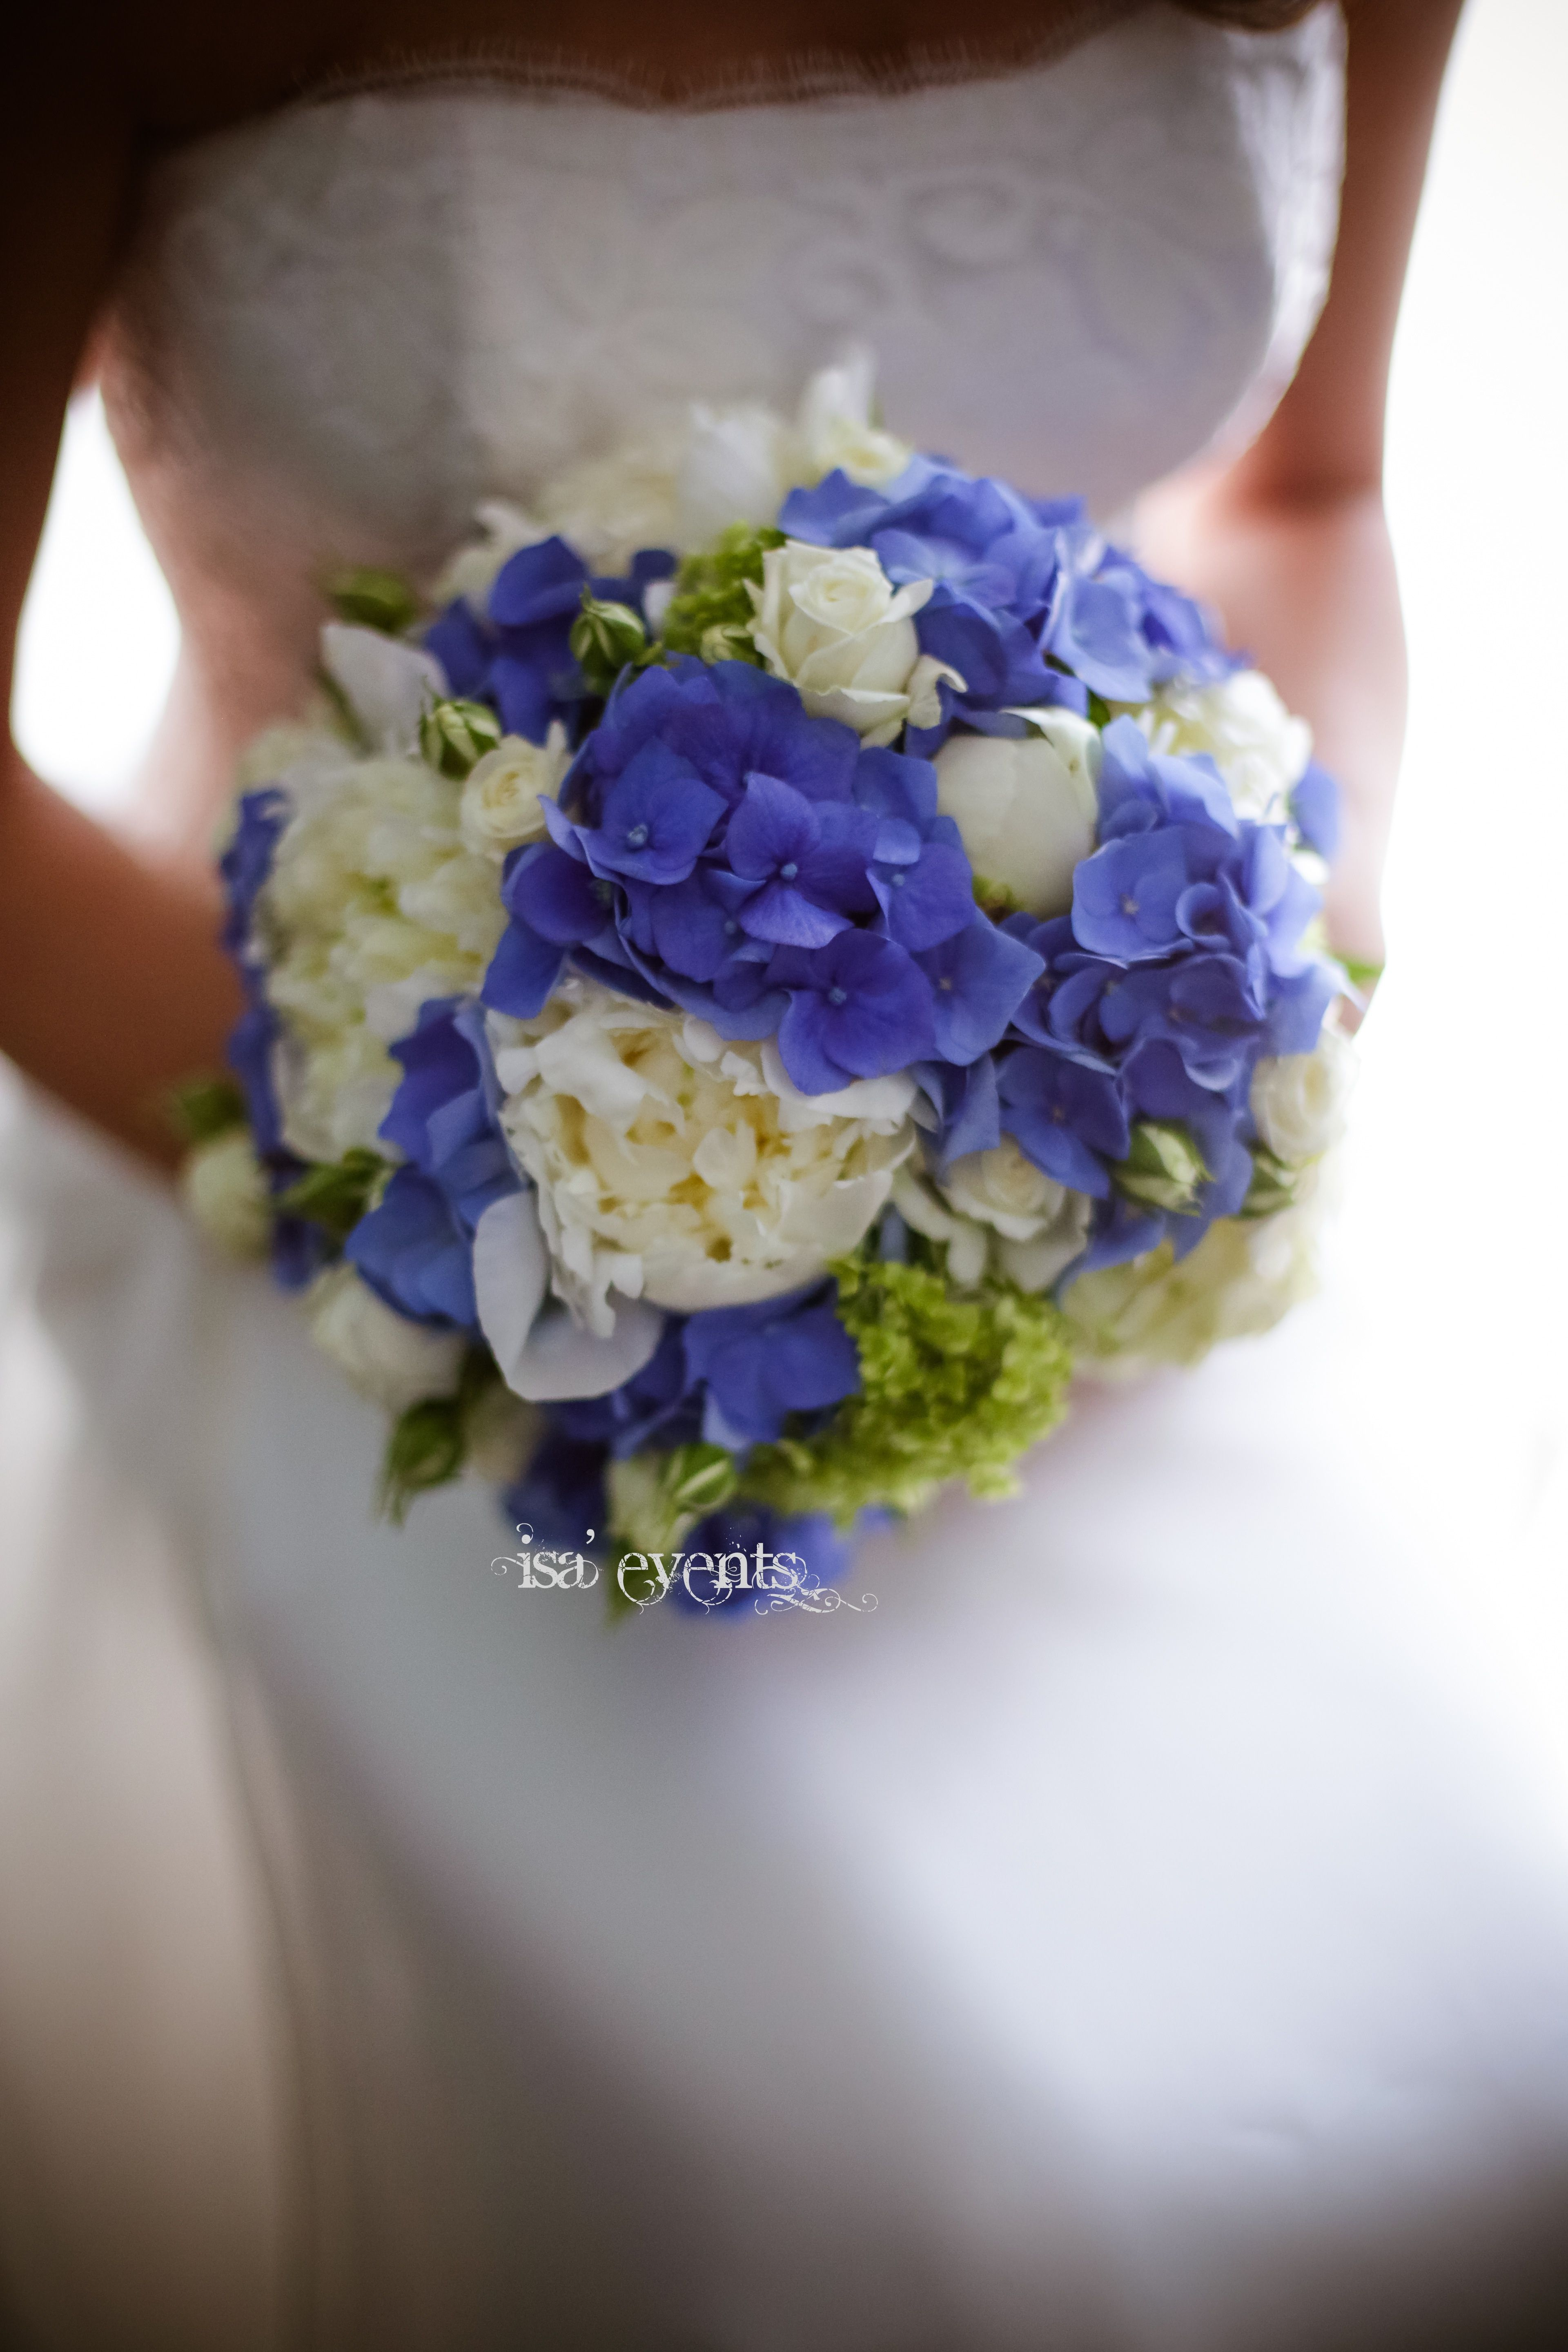 Bouquet Sposa Ortensie Blu.Bouquet Peonies And Hydrangeas Blu Bouquet Peonie E Ortensia Blu